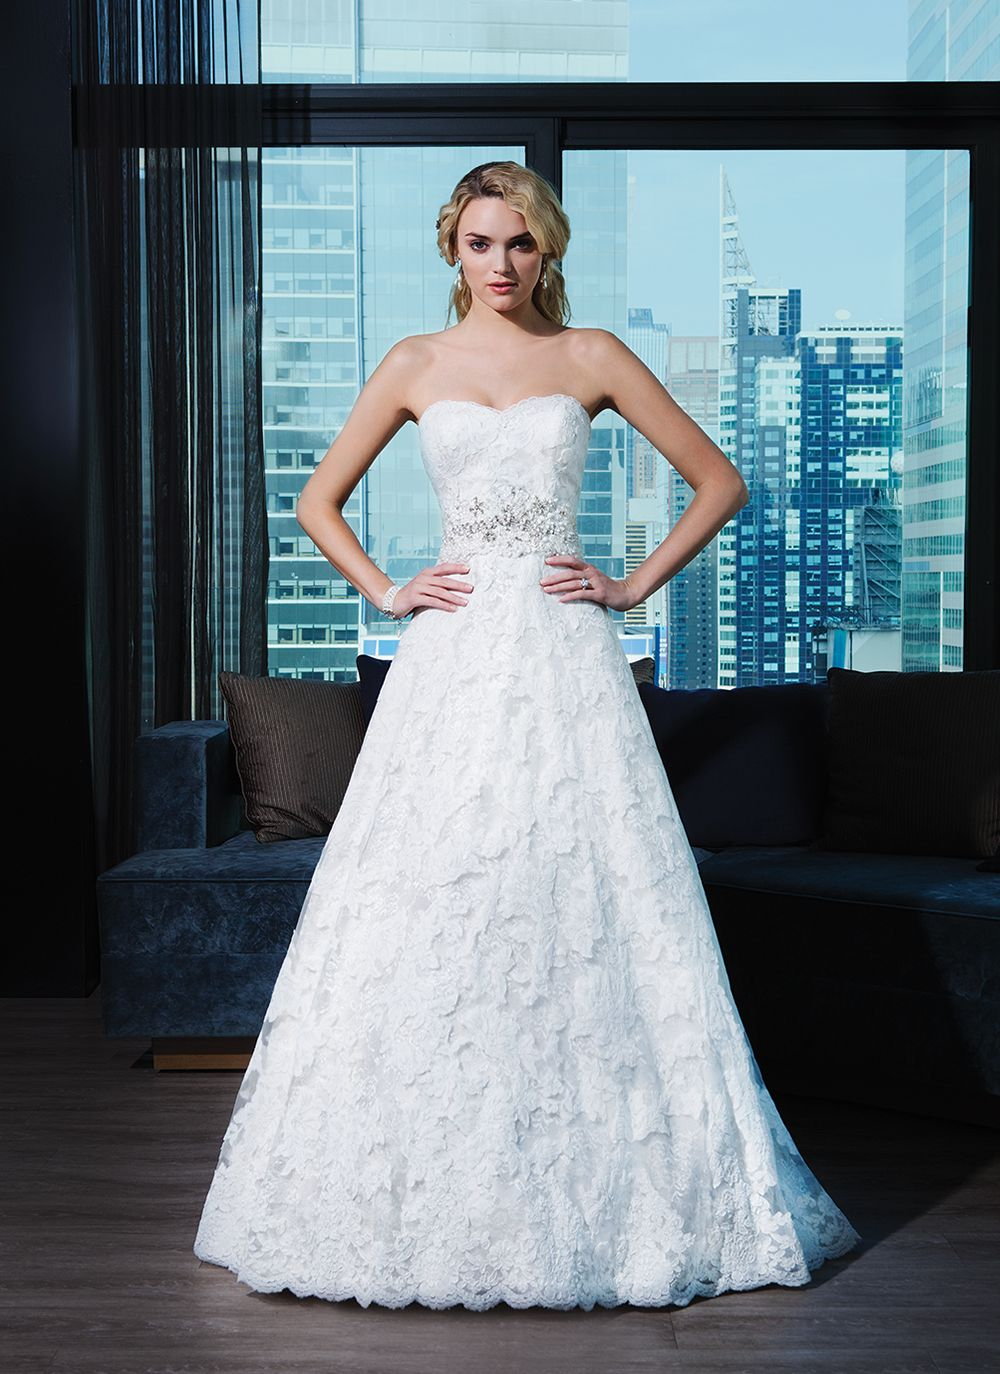 Justin Alexander signature wedding dresses style 9700 | Beaded lace ...